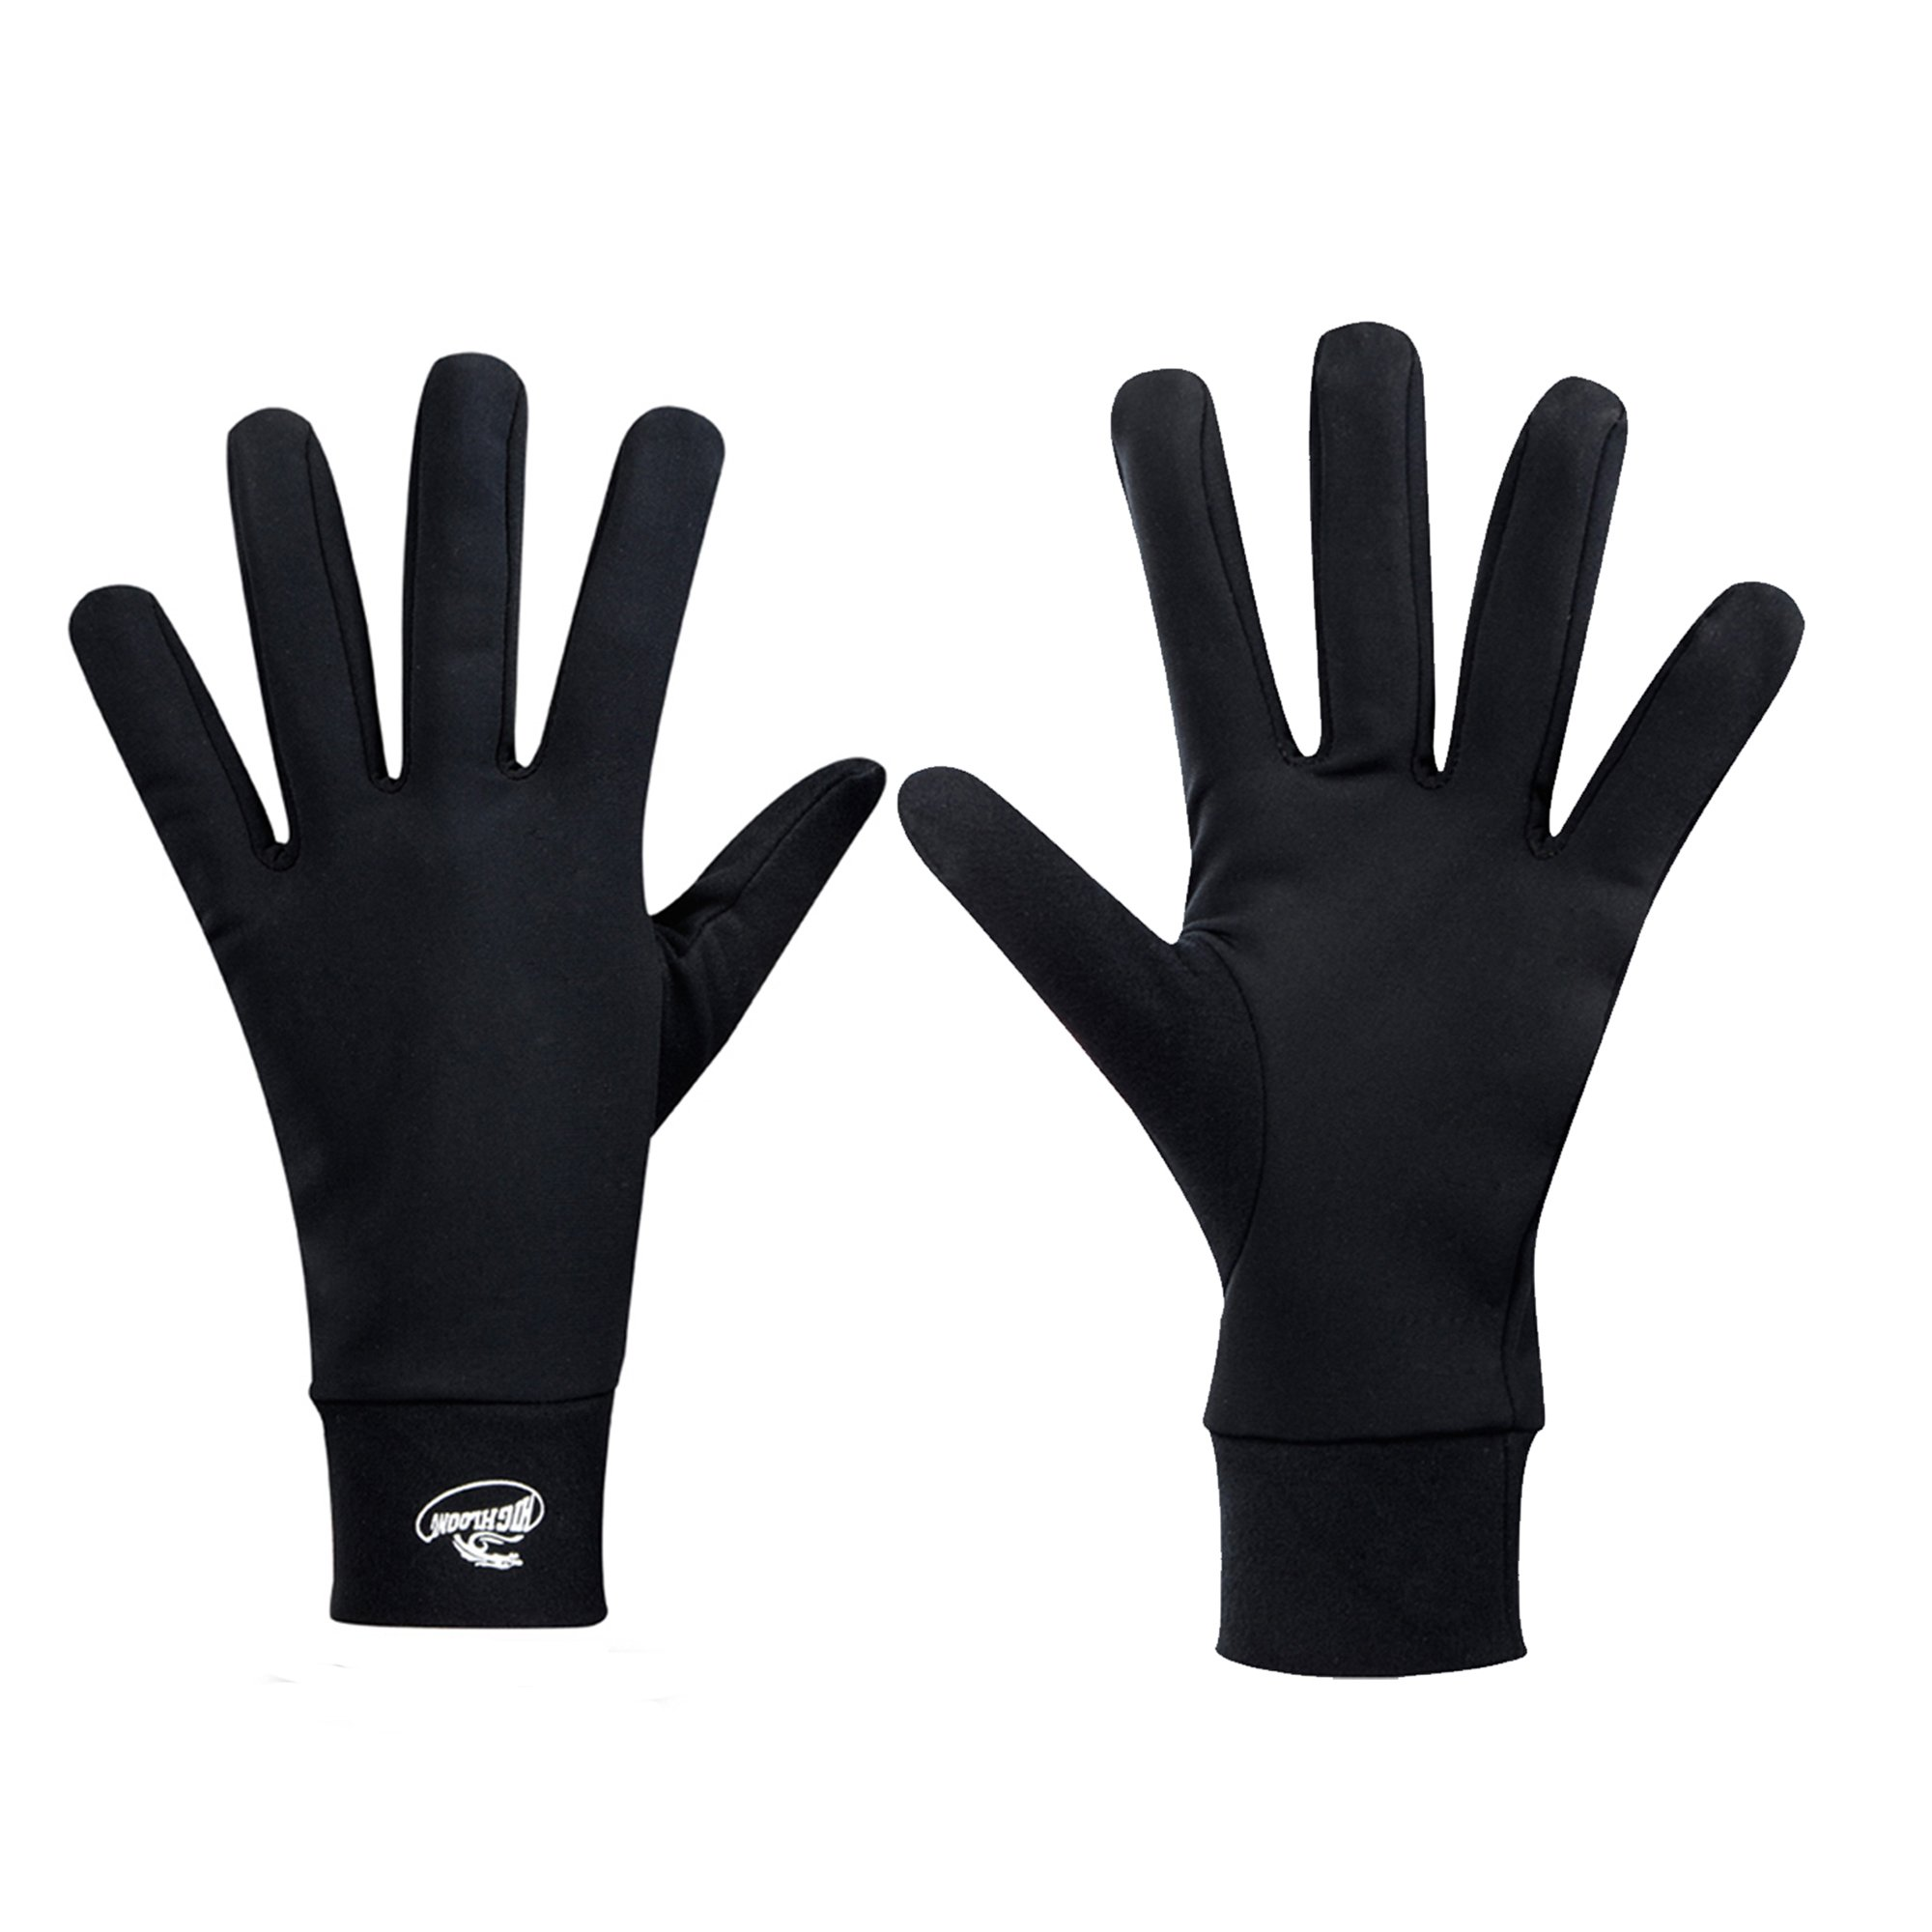 Compression Lightweight Sport Running Gloves Liner Gloves- Black - Men & Women(L)